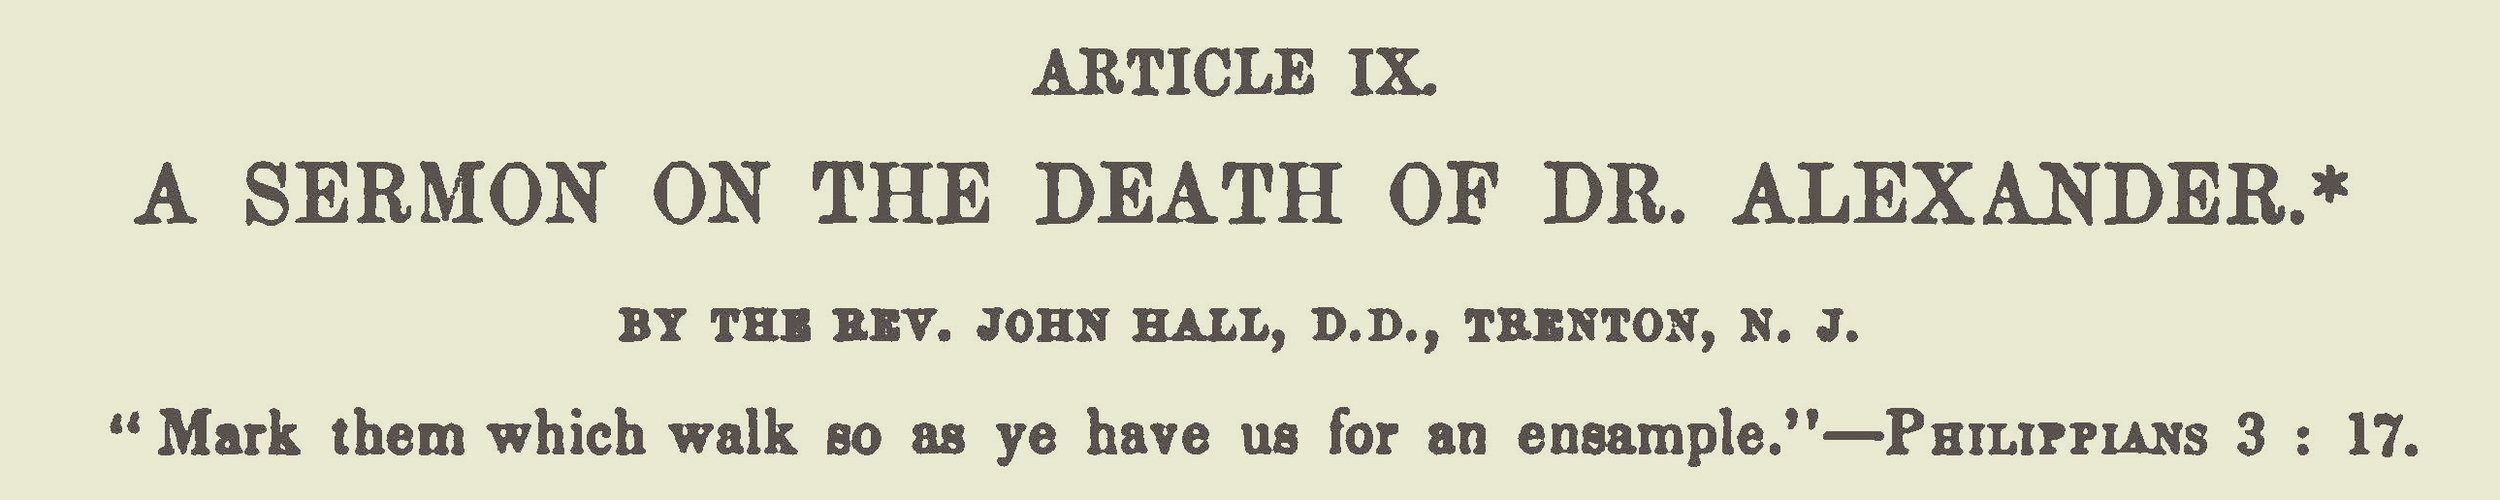 Hall, John, A Sermon on the Death of Dr Alexander Title Page.jpg